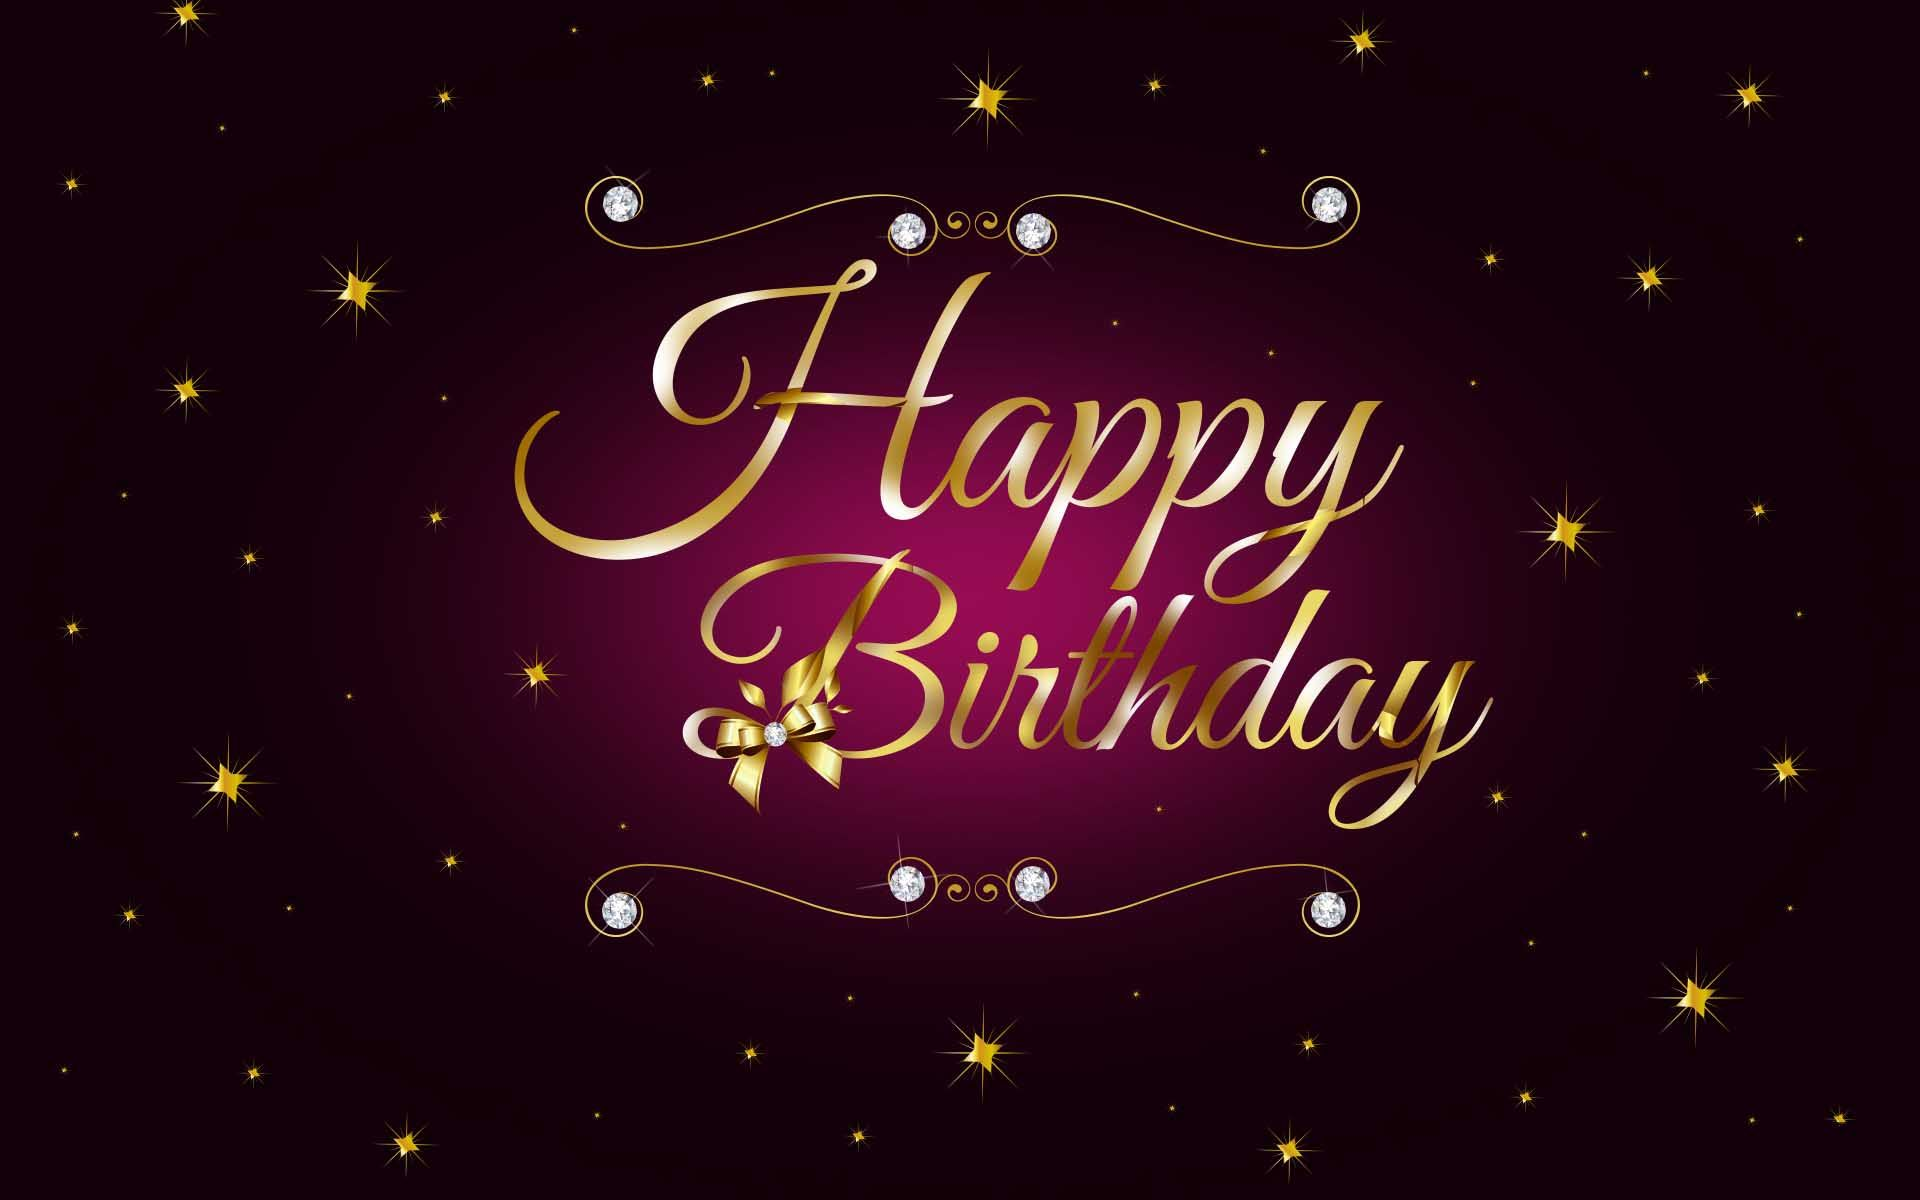 happy birthday image download for mobile ; xbclndyedqhewenkhjni